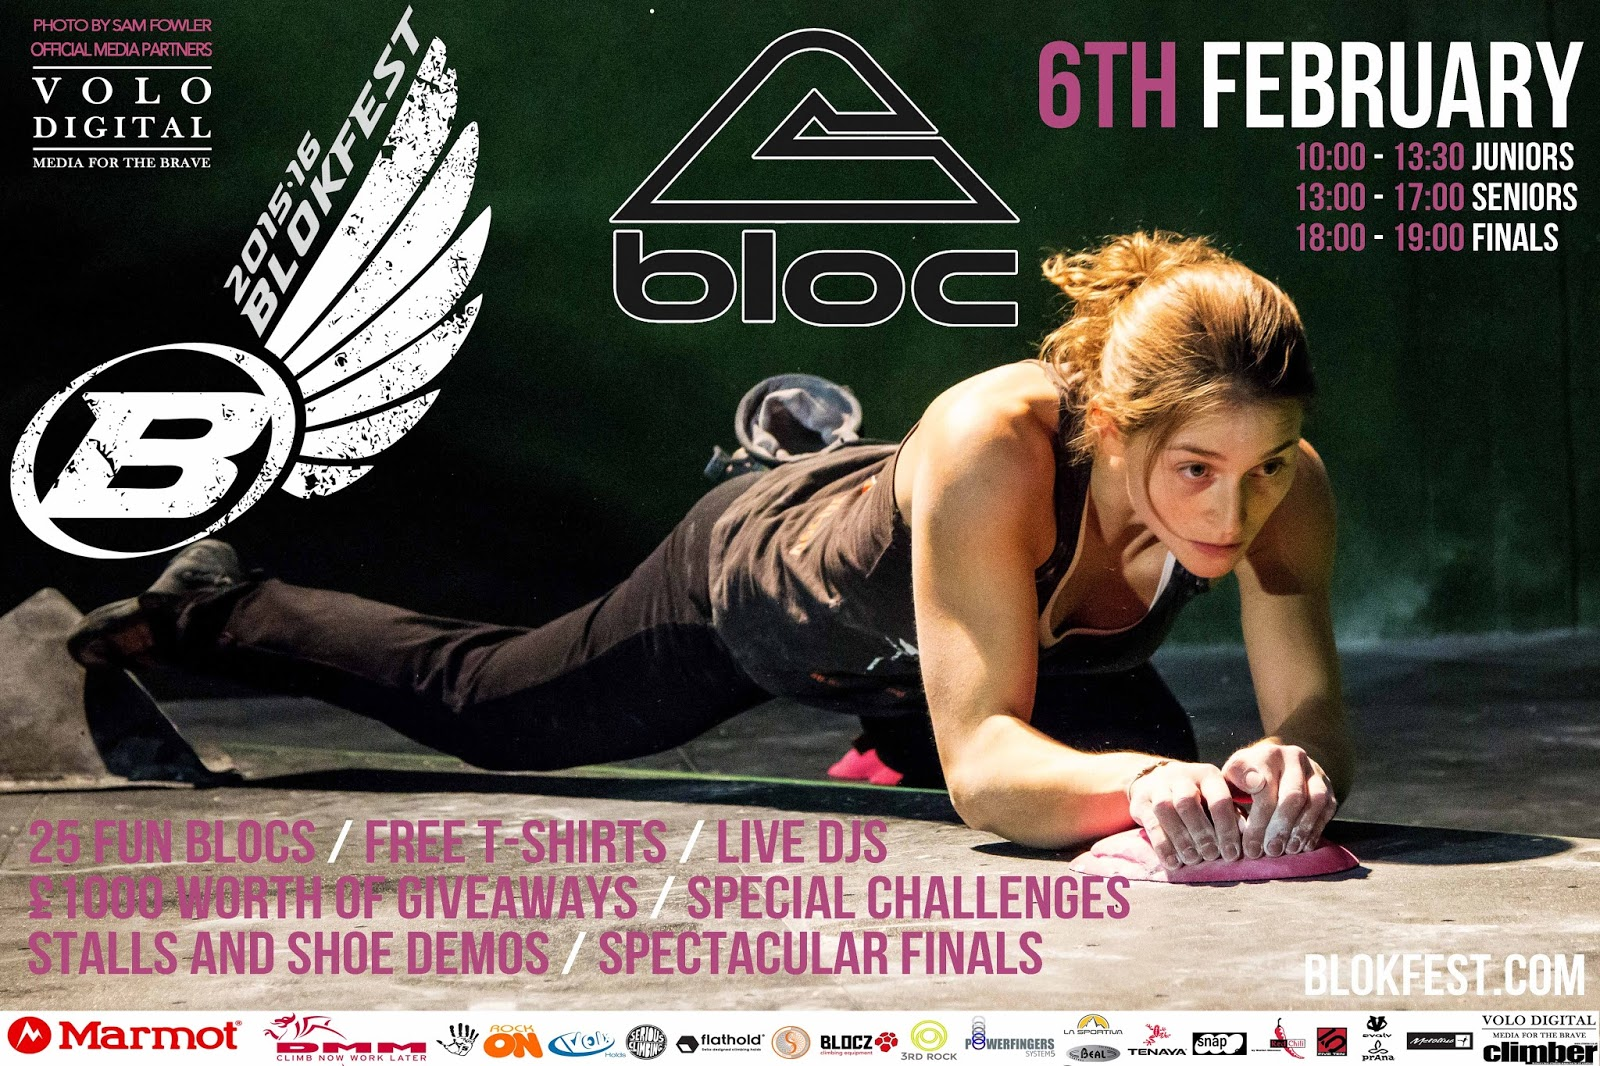 Blokfest climbing competition comes to Bristol